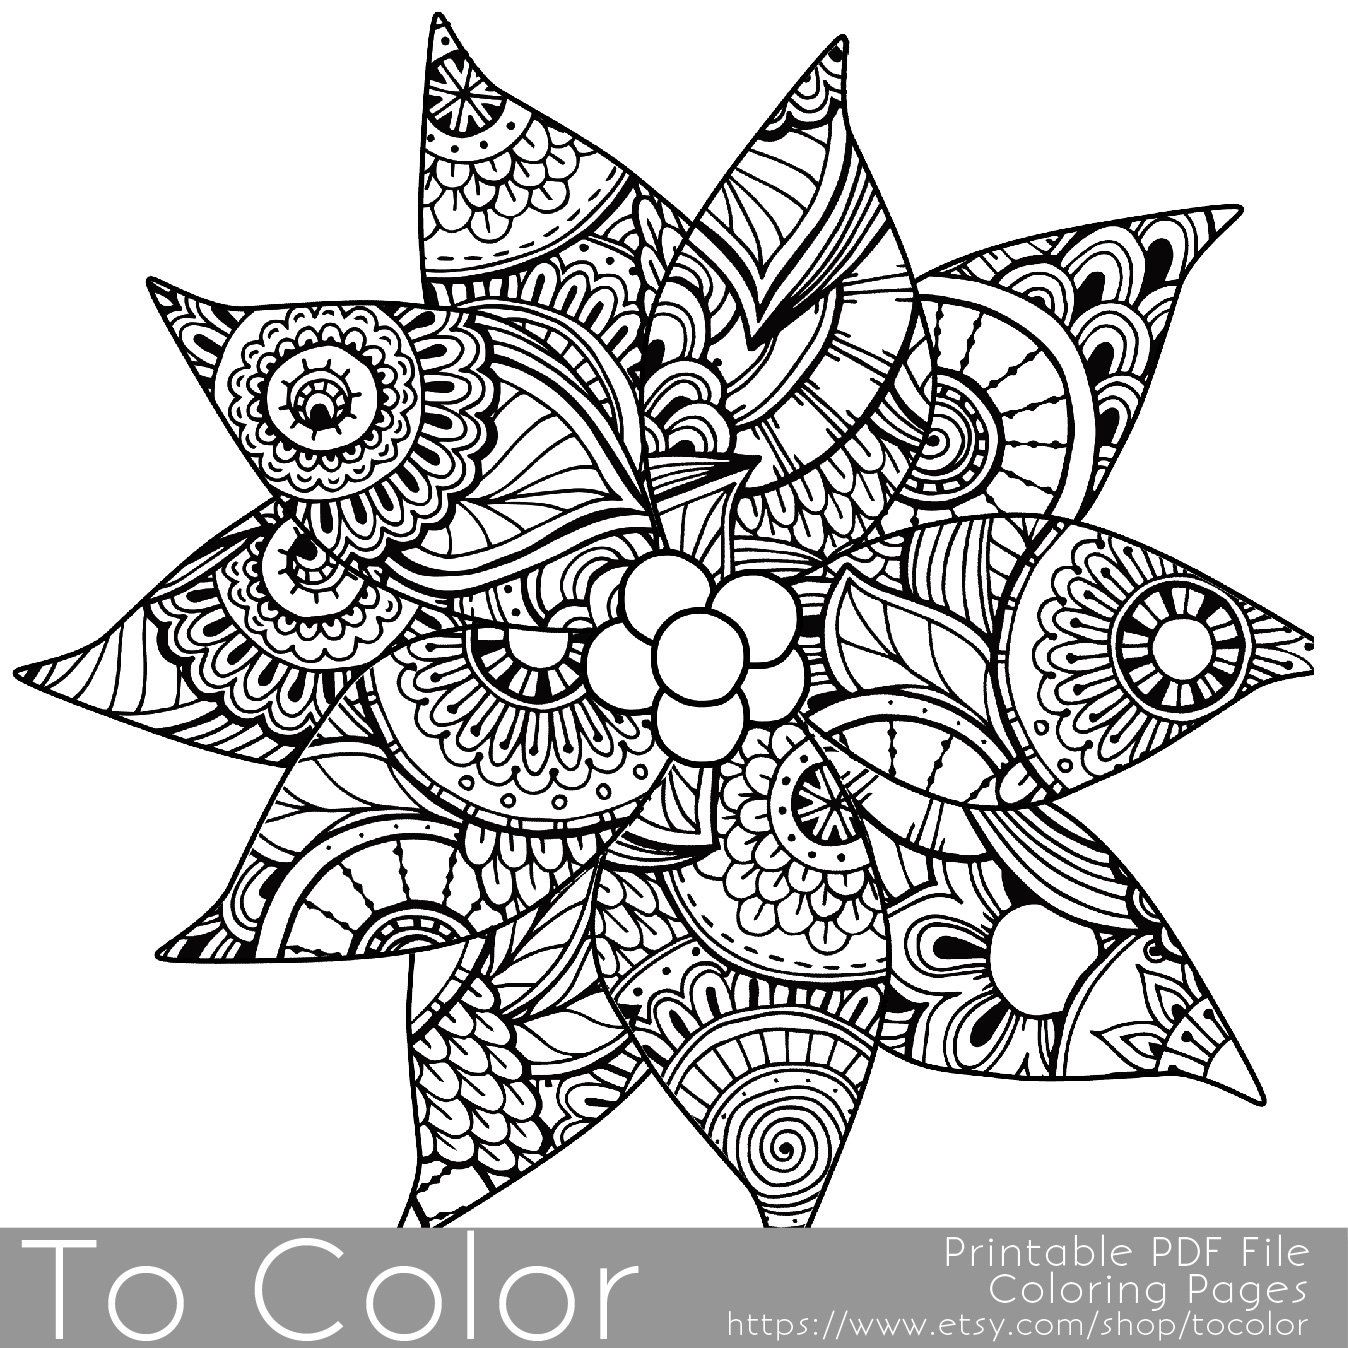 Christmas Coloring Page For Adults Poinsettia Coloring Page Holiday Col Detailed Coloring Pages Printable Christmas Coloring Pages Christmas Coloring Pages